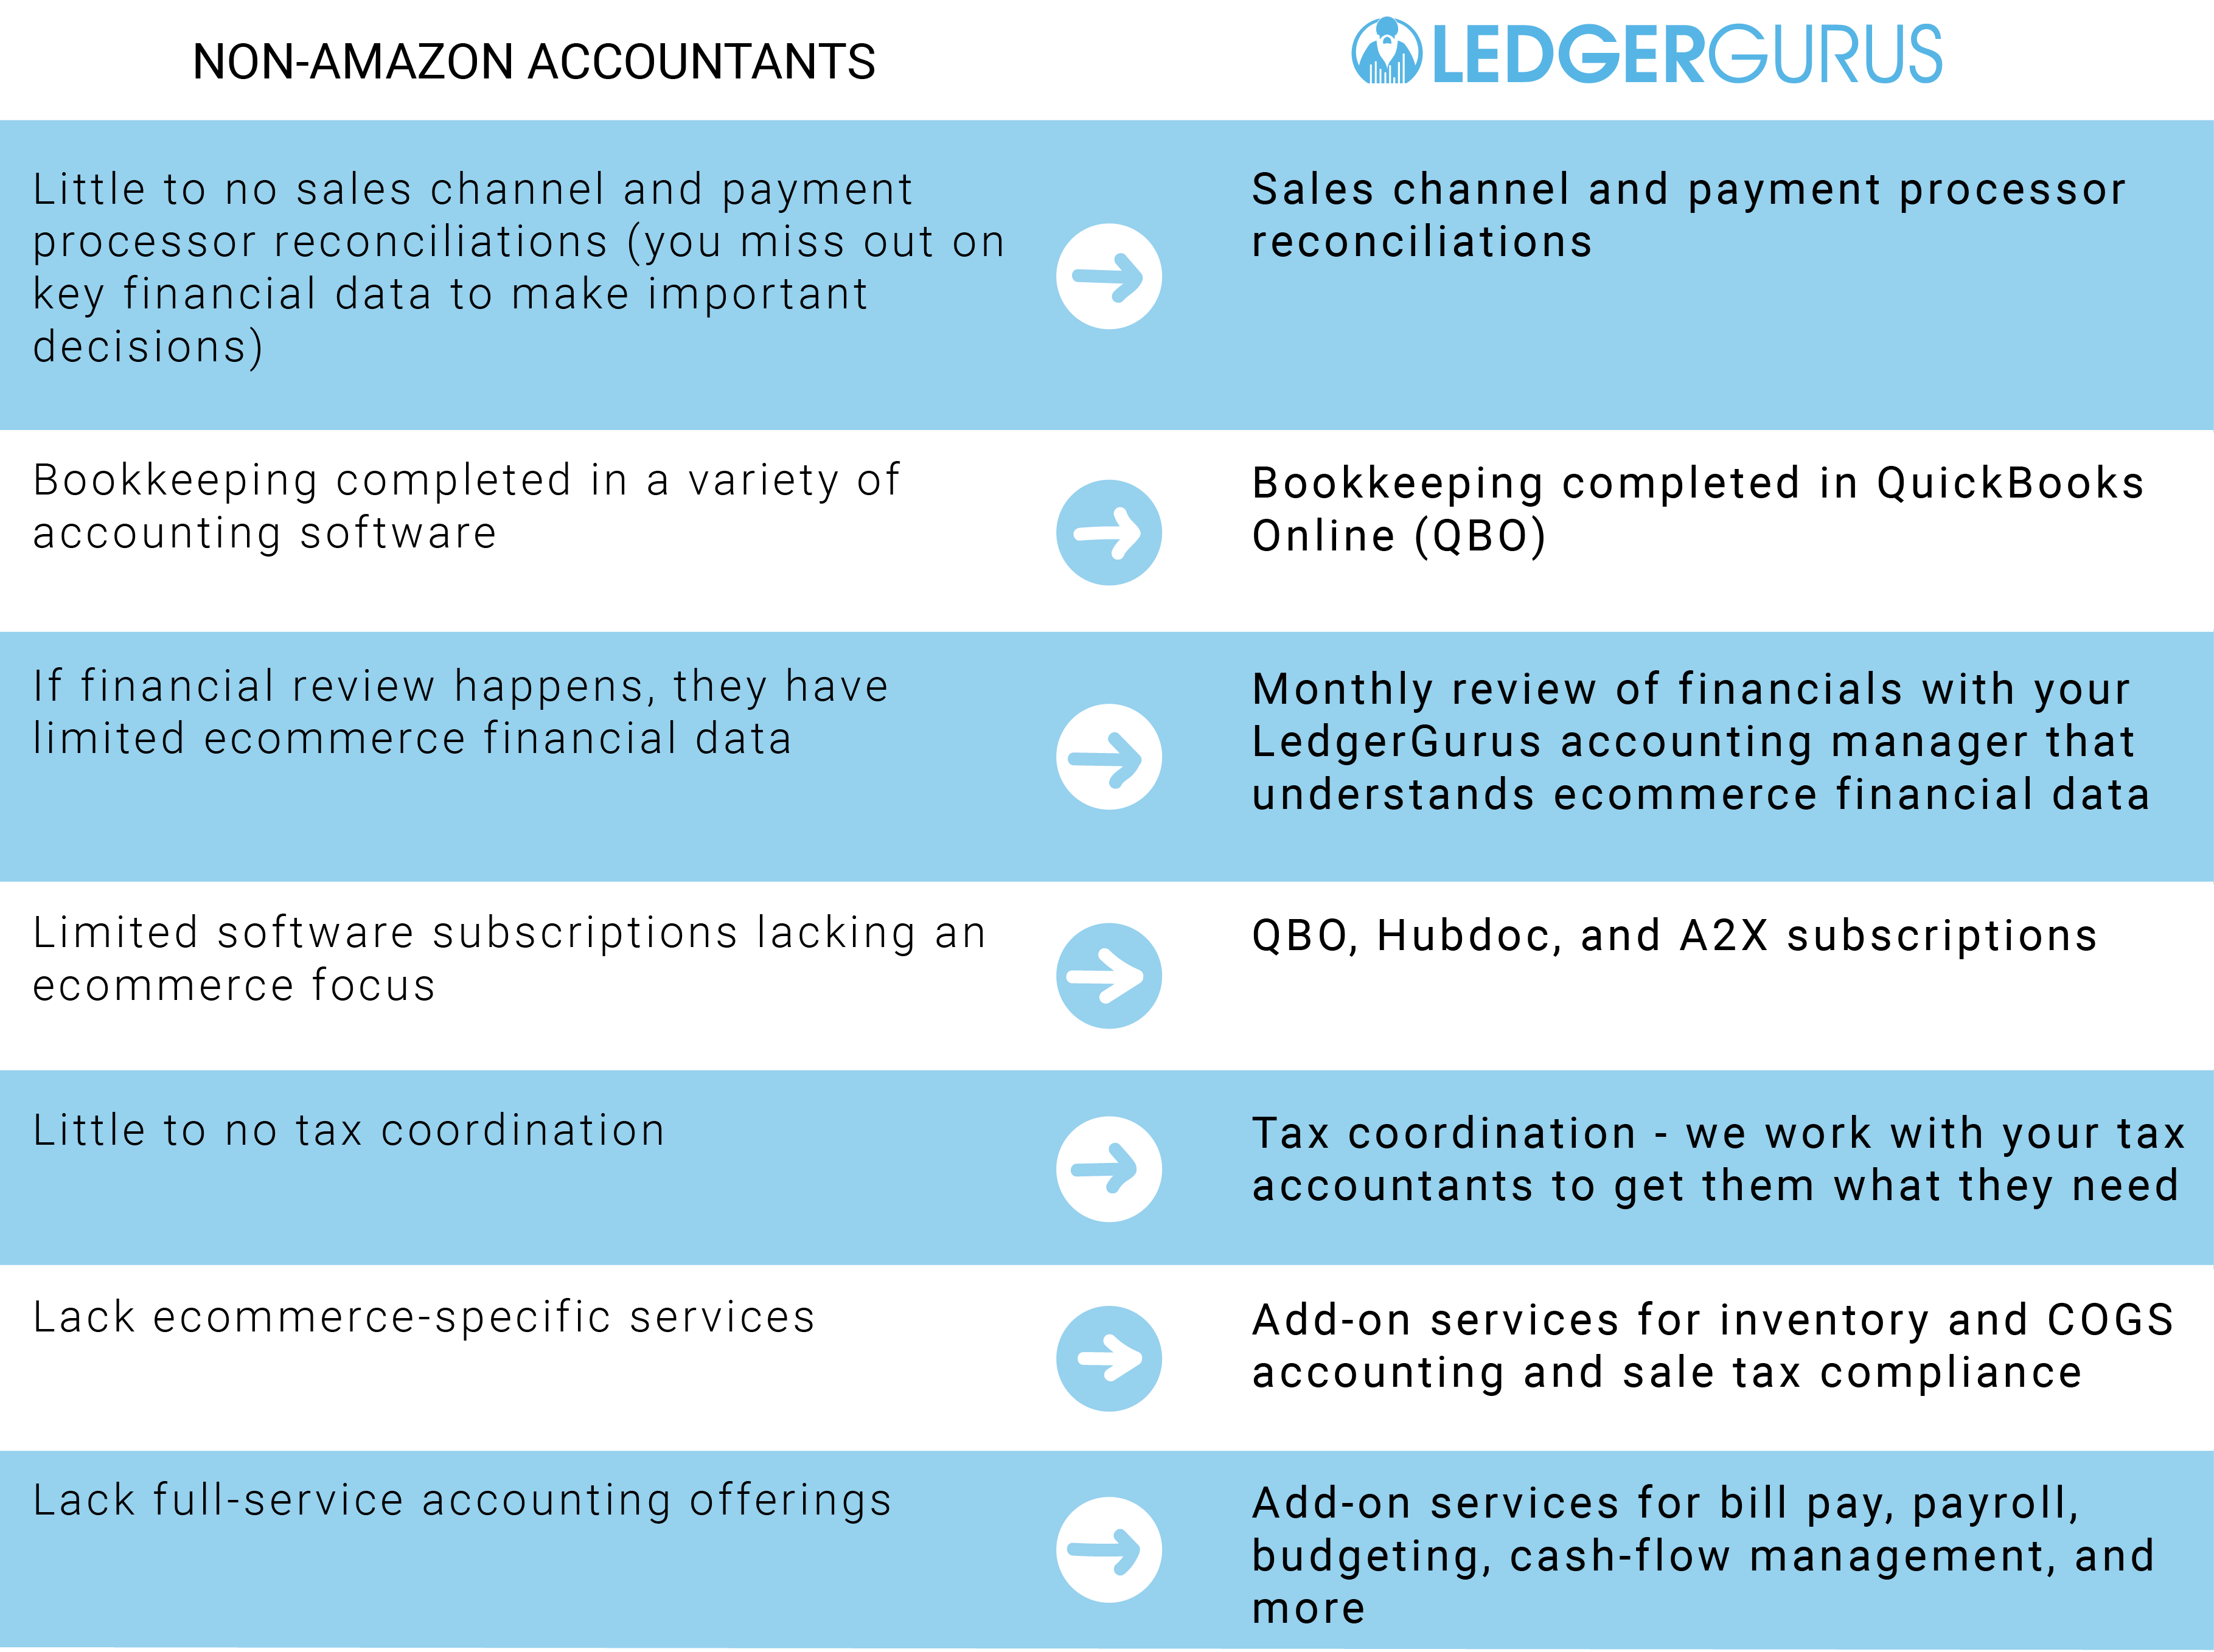 Amazon Accounting Services - Non-Amazon Accountants vs LedgerGurus